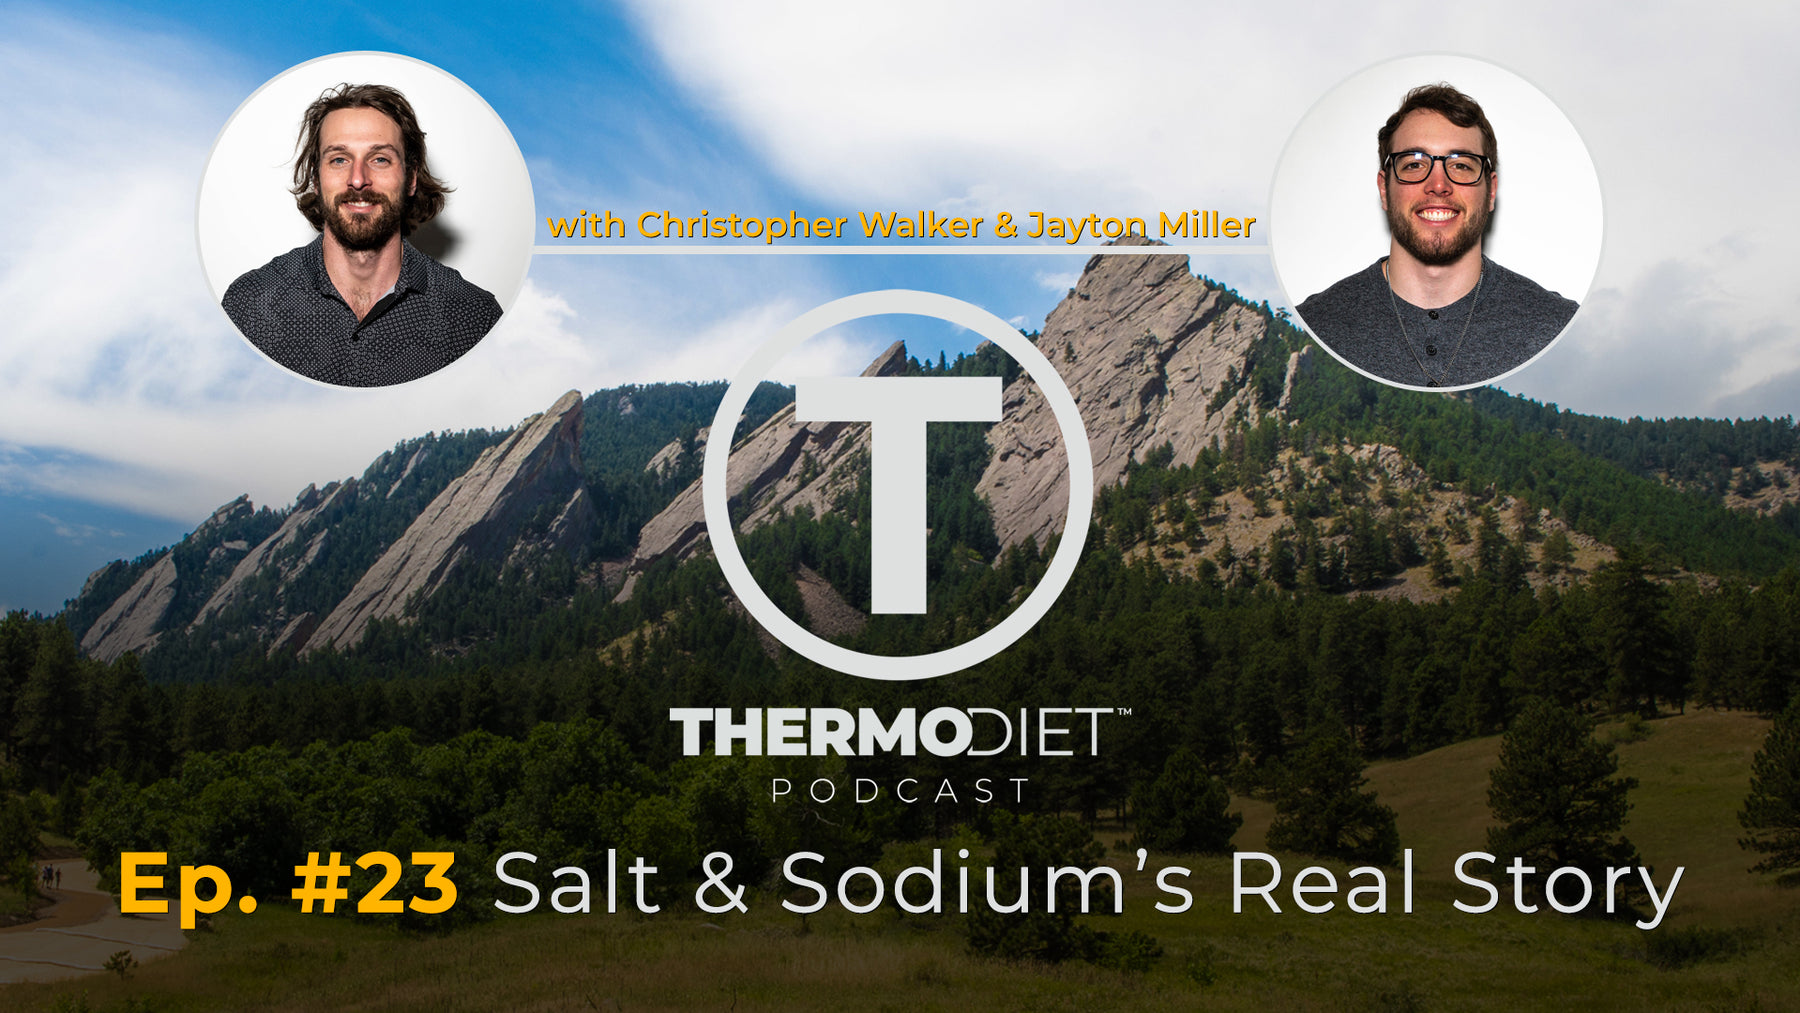 Thermo Diet Podcast Episode 23 - Salt & Sodiums Real Story